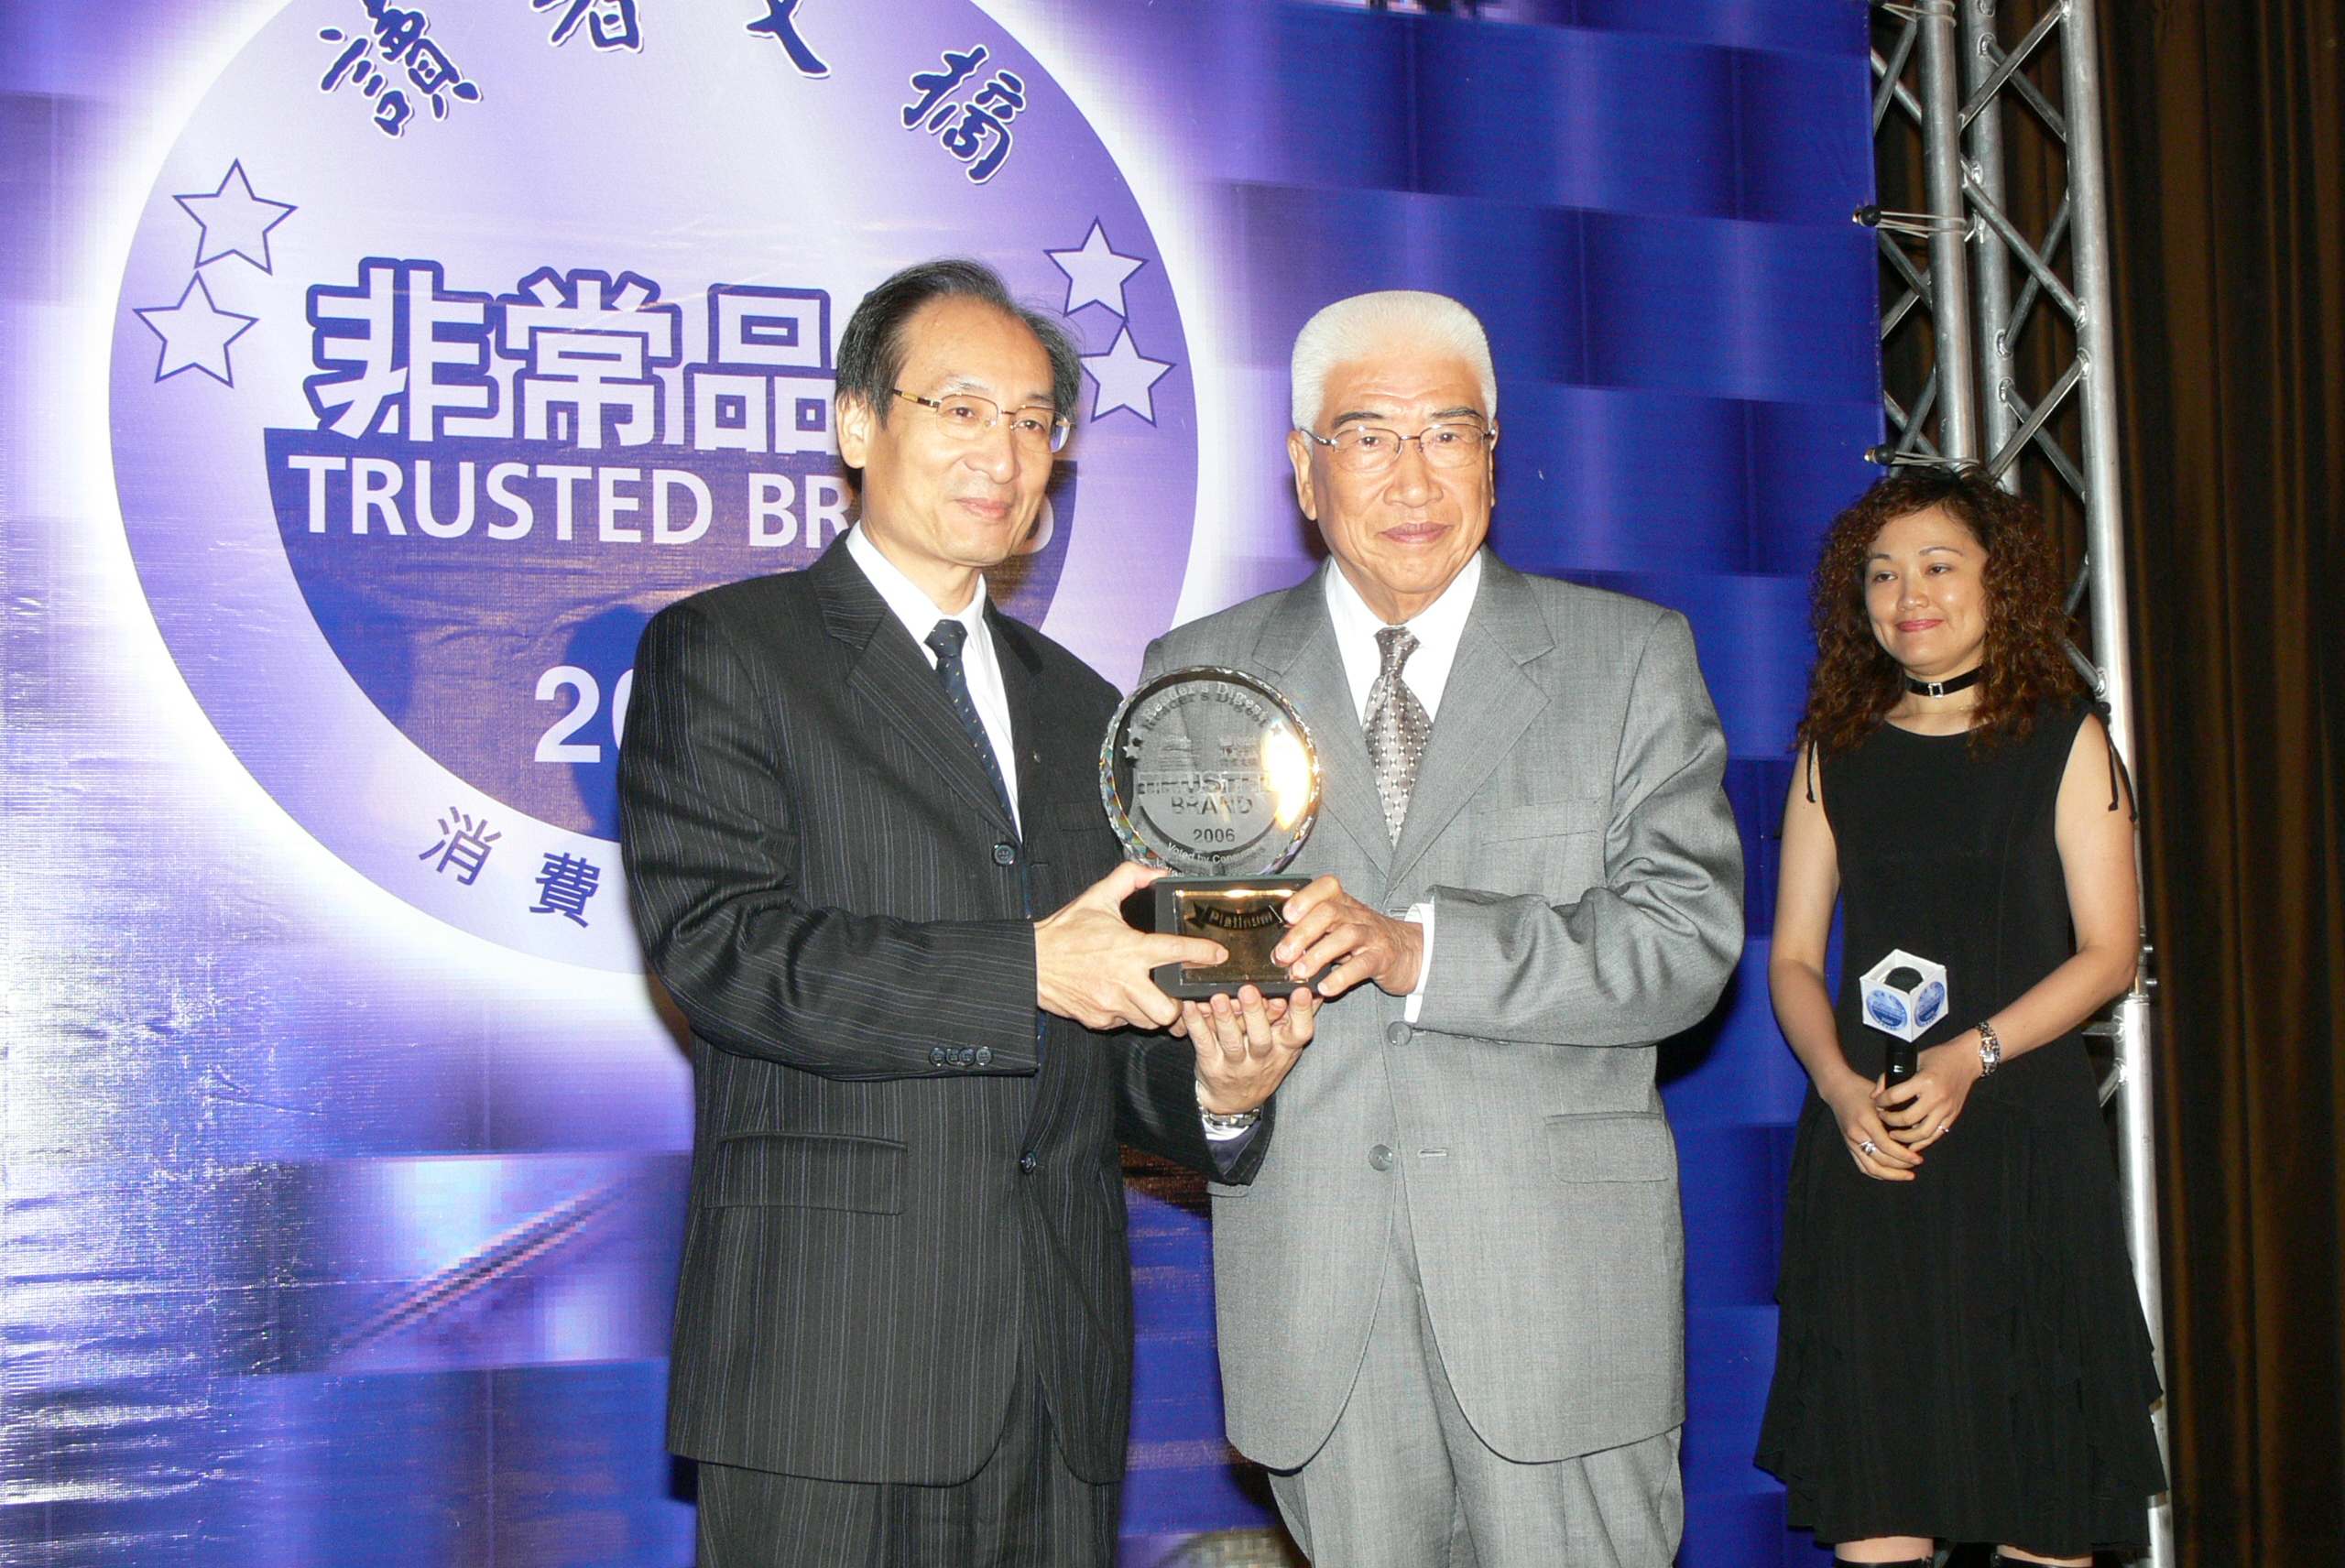 Photo of Award ceremony of Trust Brand 2006 by Reader's Digest